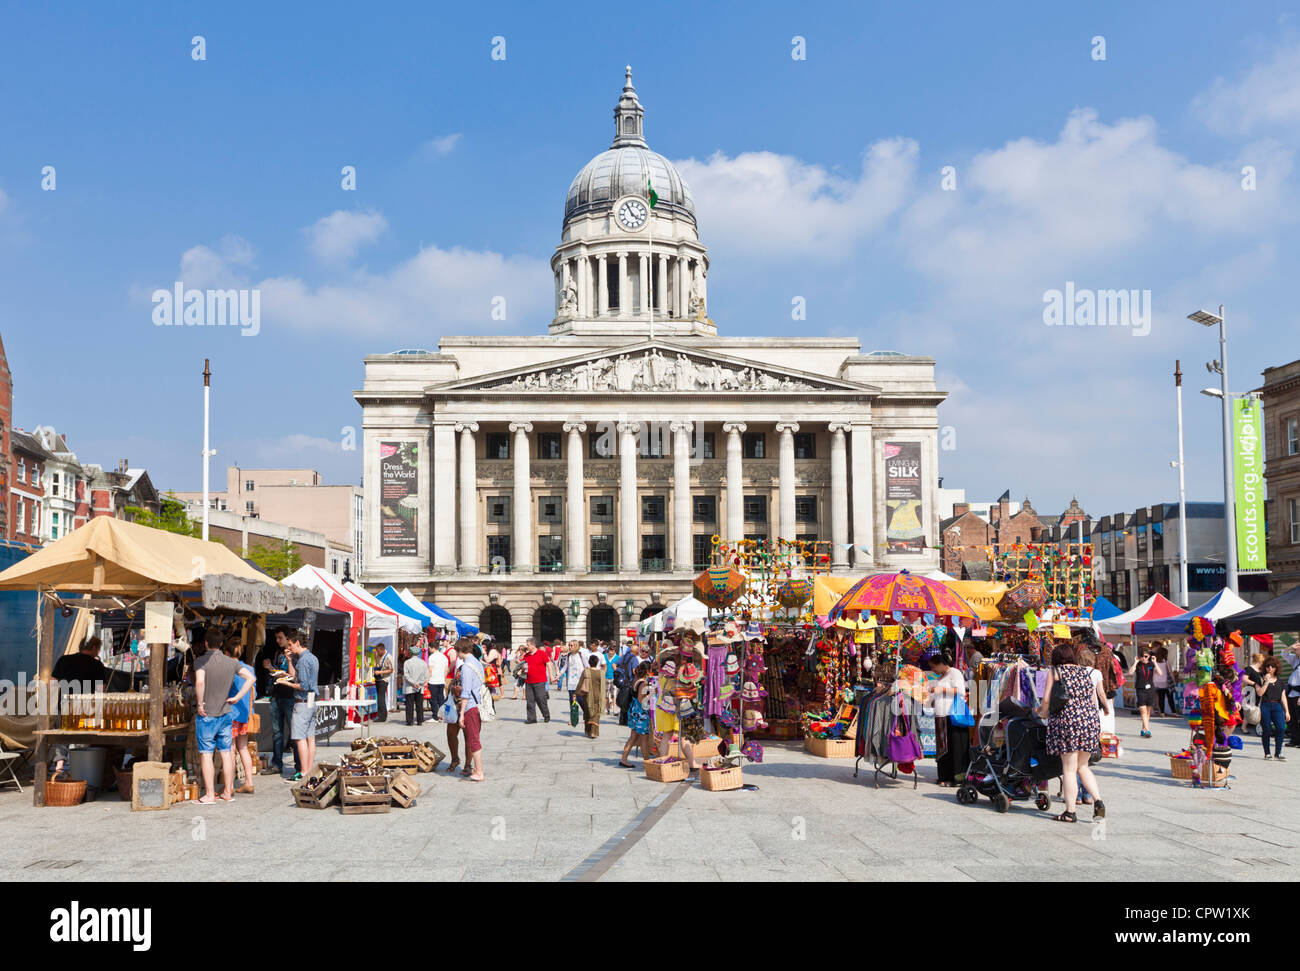 Council House in Old Market Square Nottingham Nottinghamshire England GB UK Europe - Stock Image